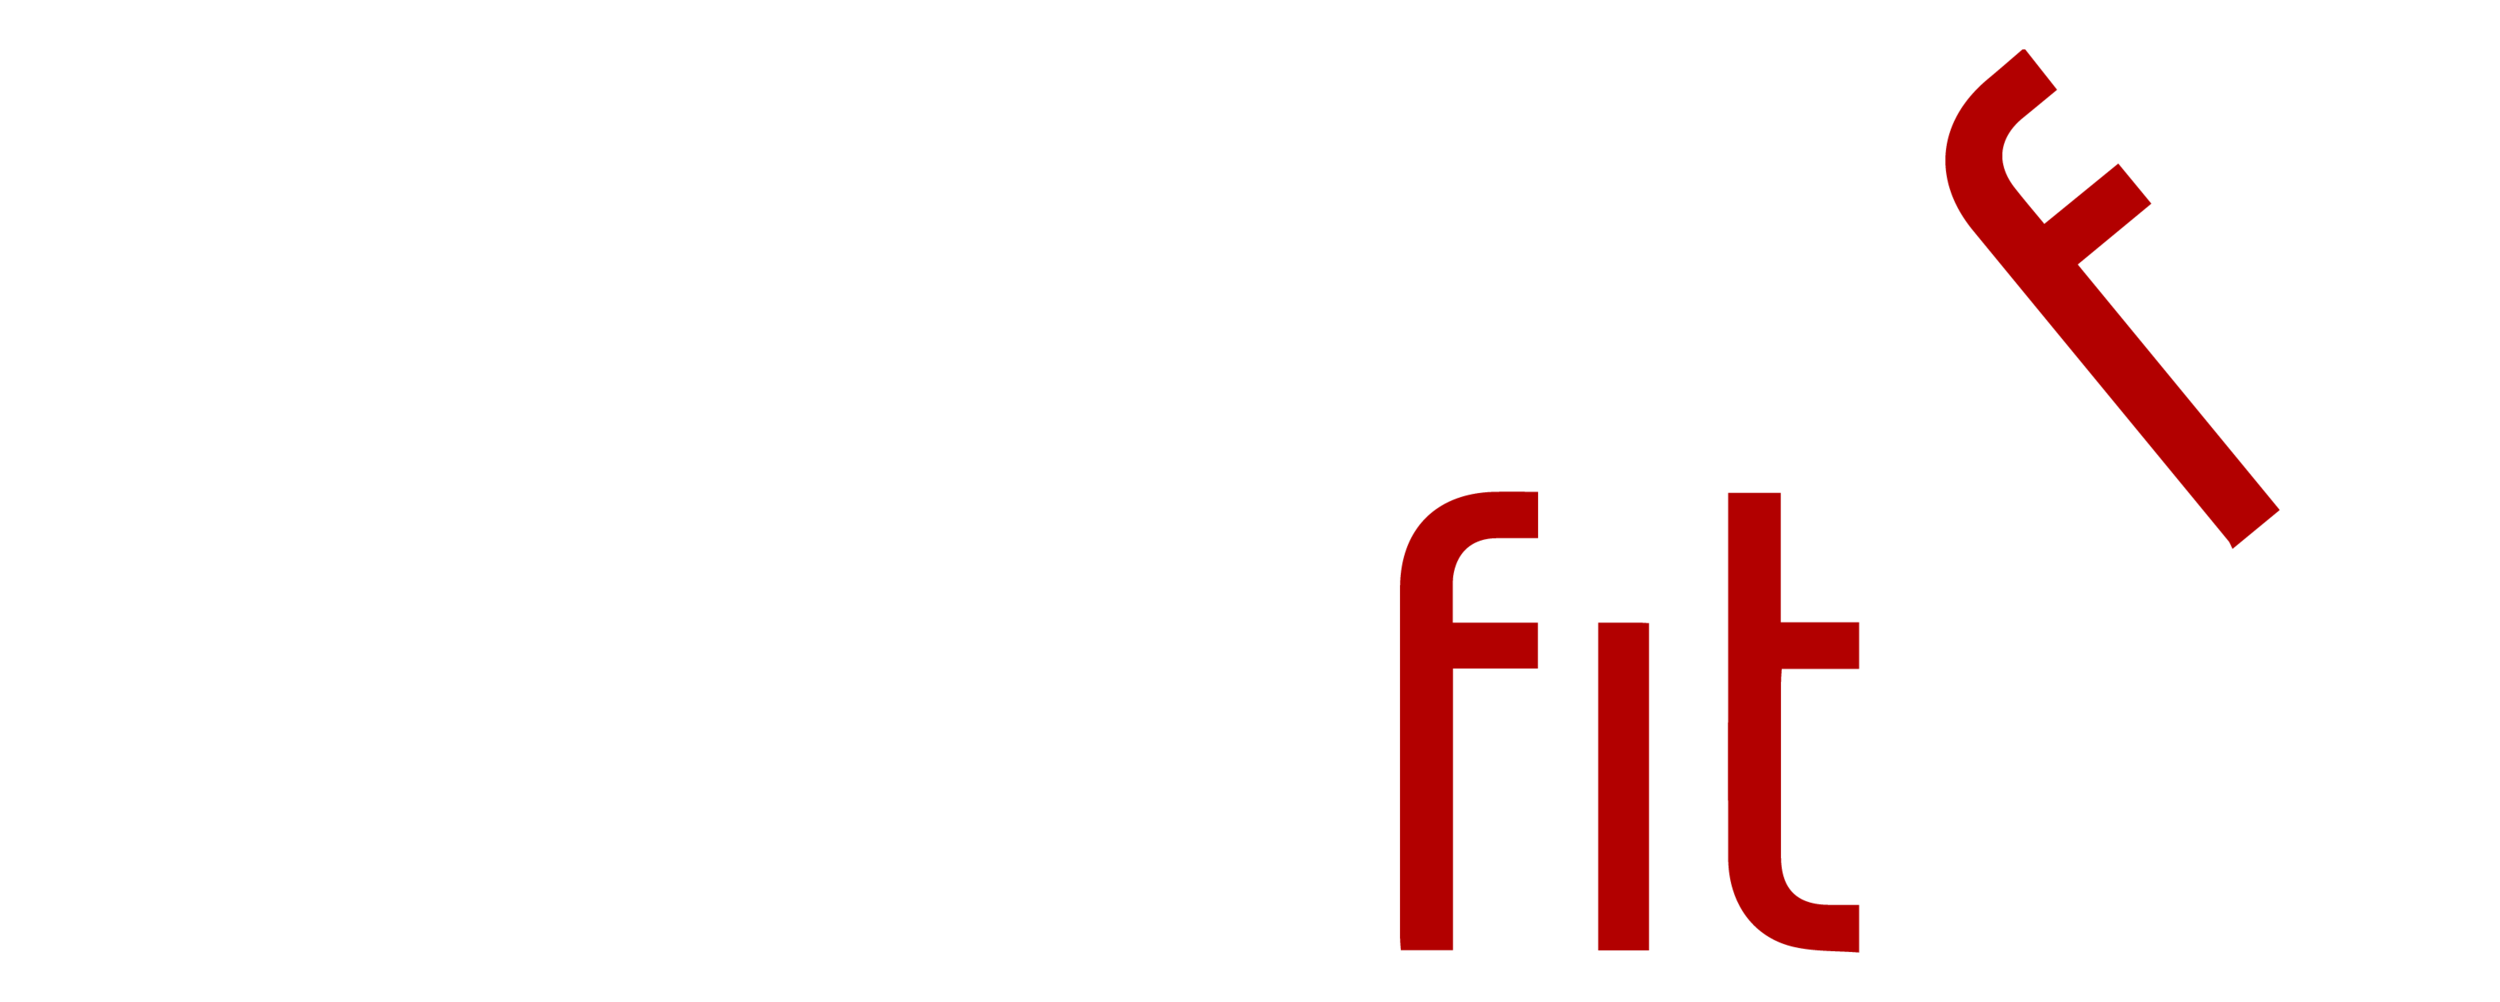 CaterFit Logo-02.png